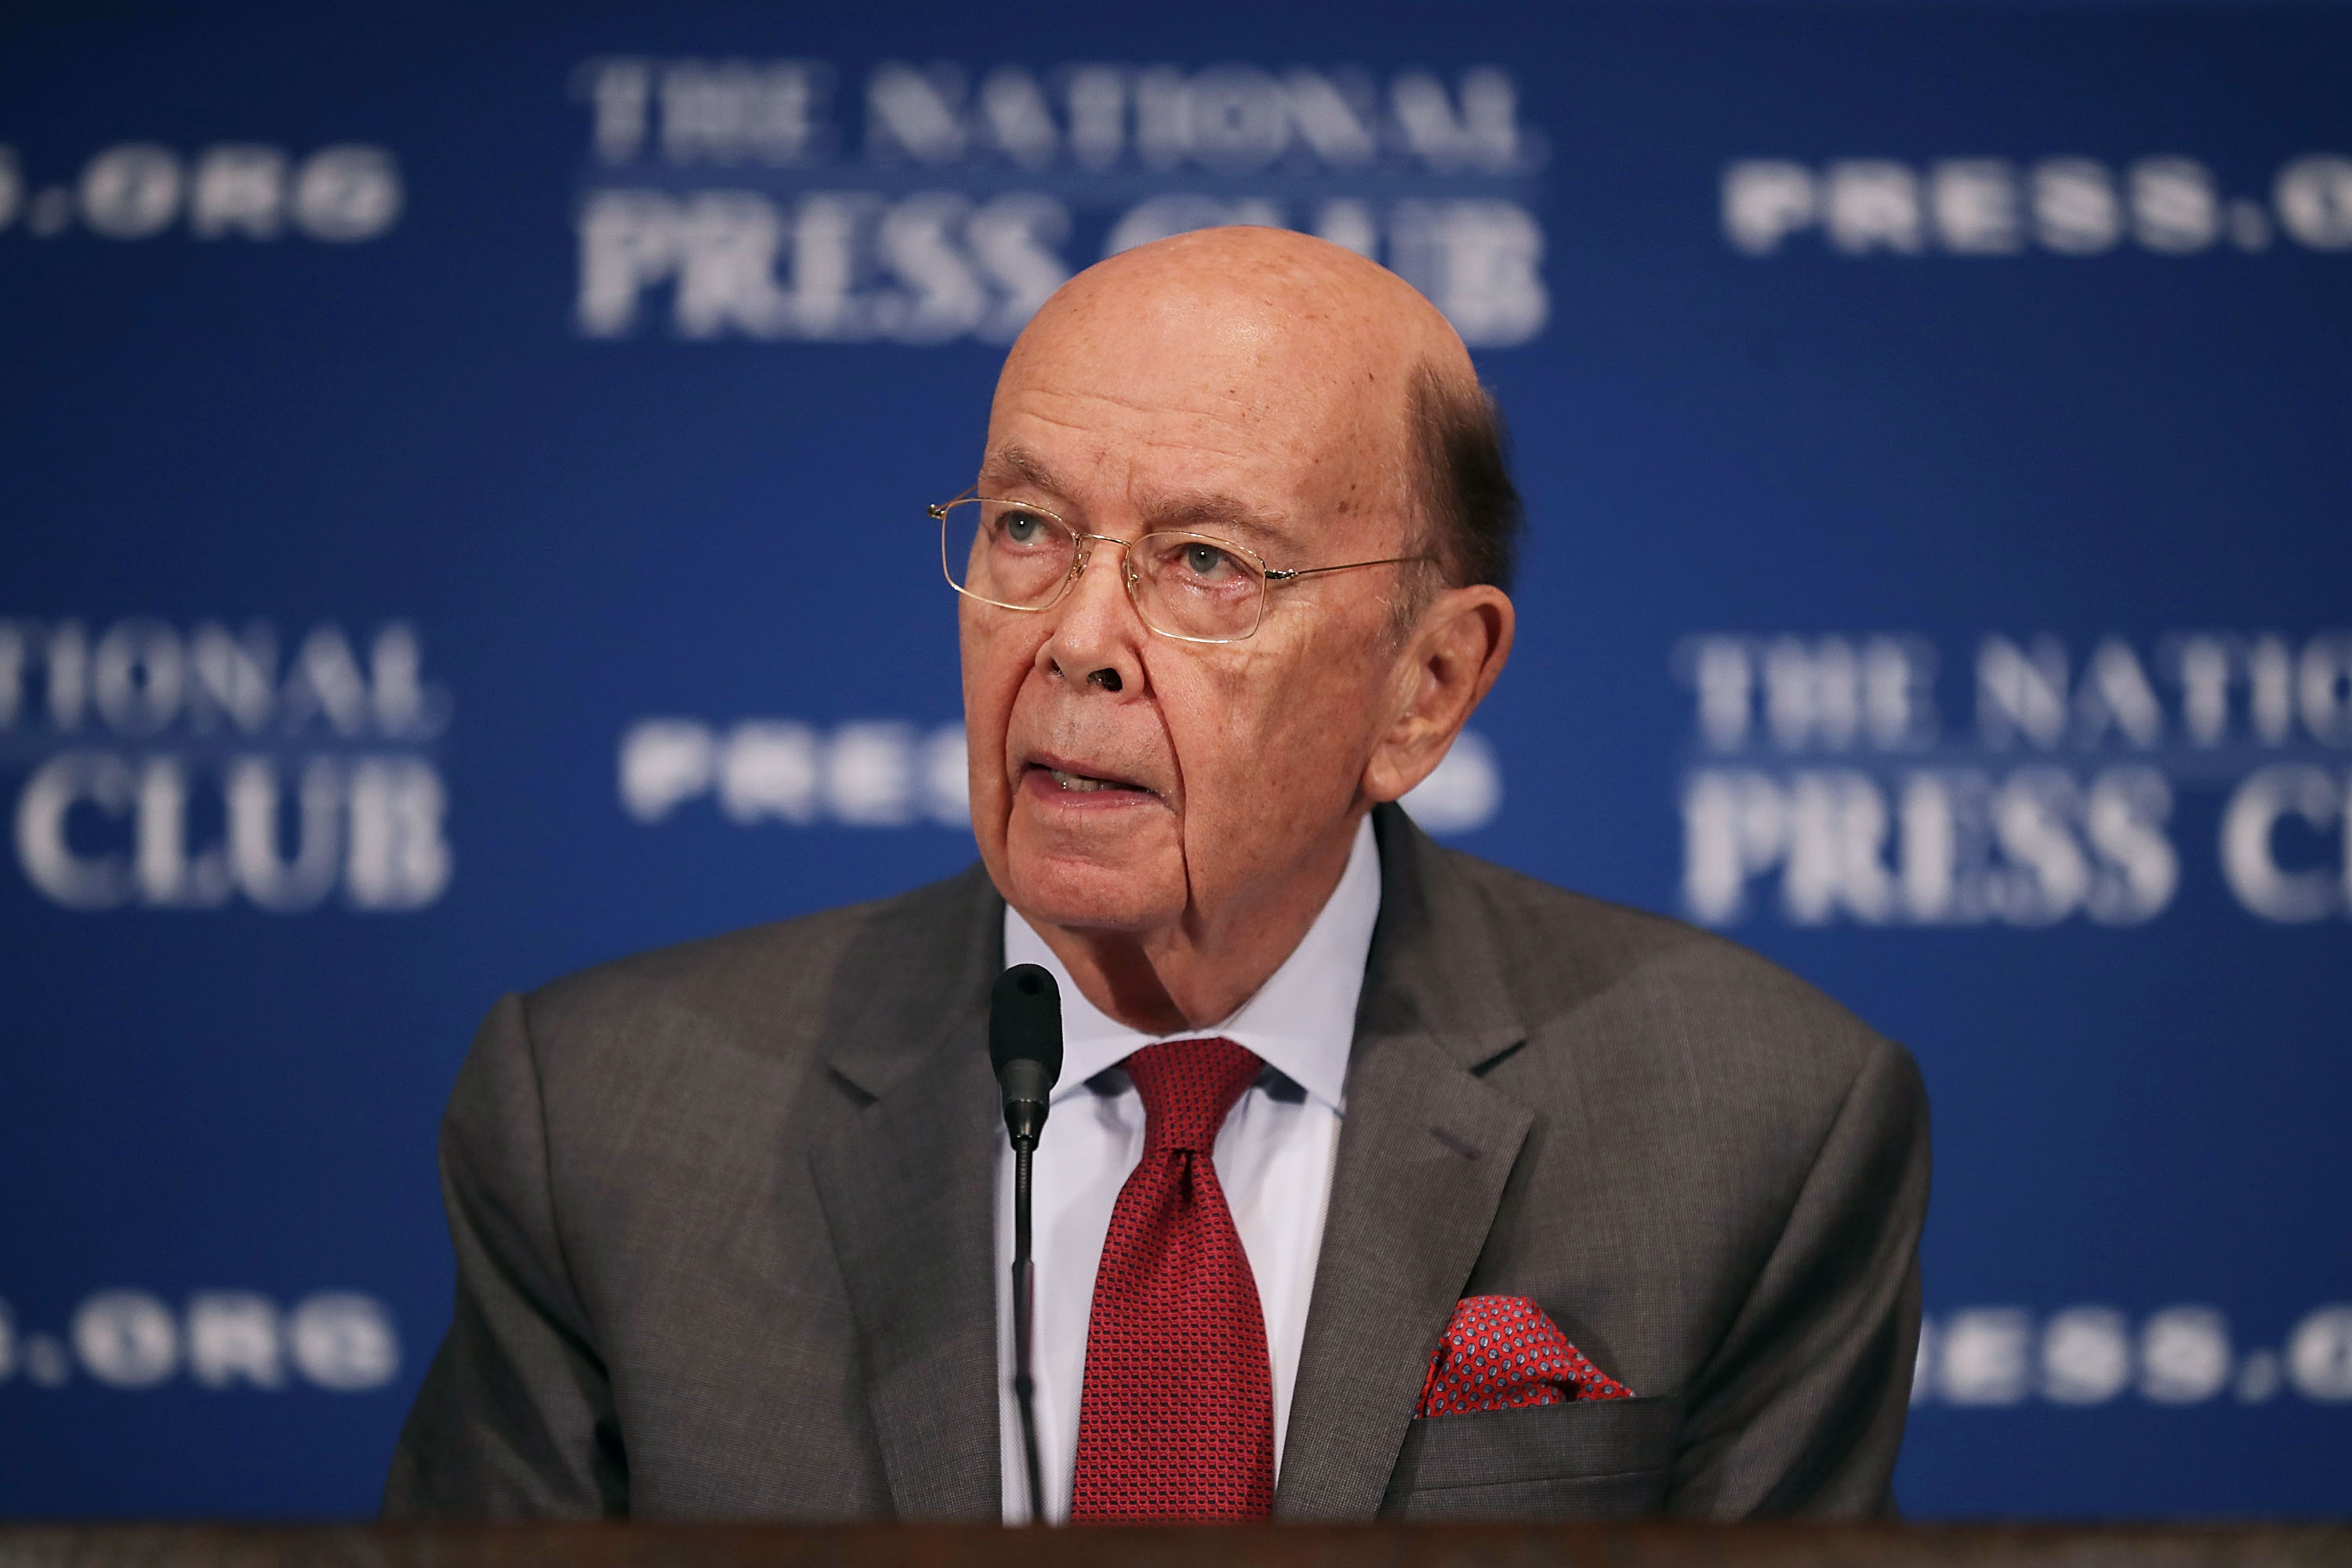 Commerce Secretary Wilbur Ross delivers keynote remarks during the Newsmakers Luncheon at the National Press Club May 14, 2018 in Washington, DC. (Chip Somodevilla/Getty Images)